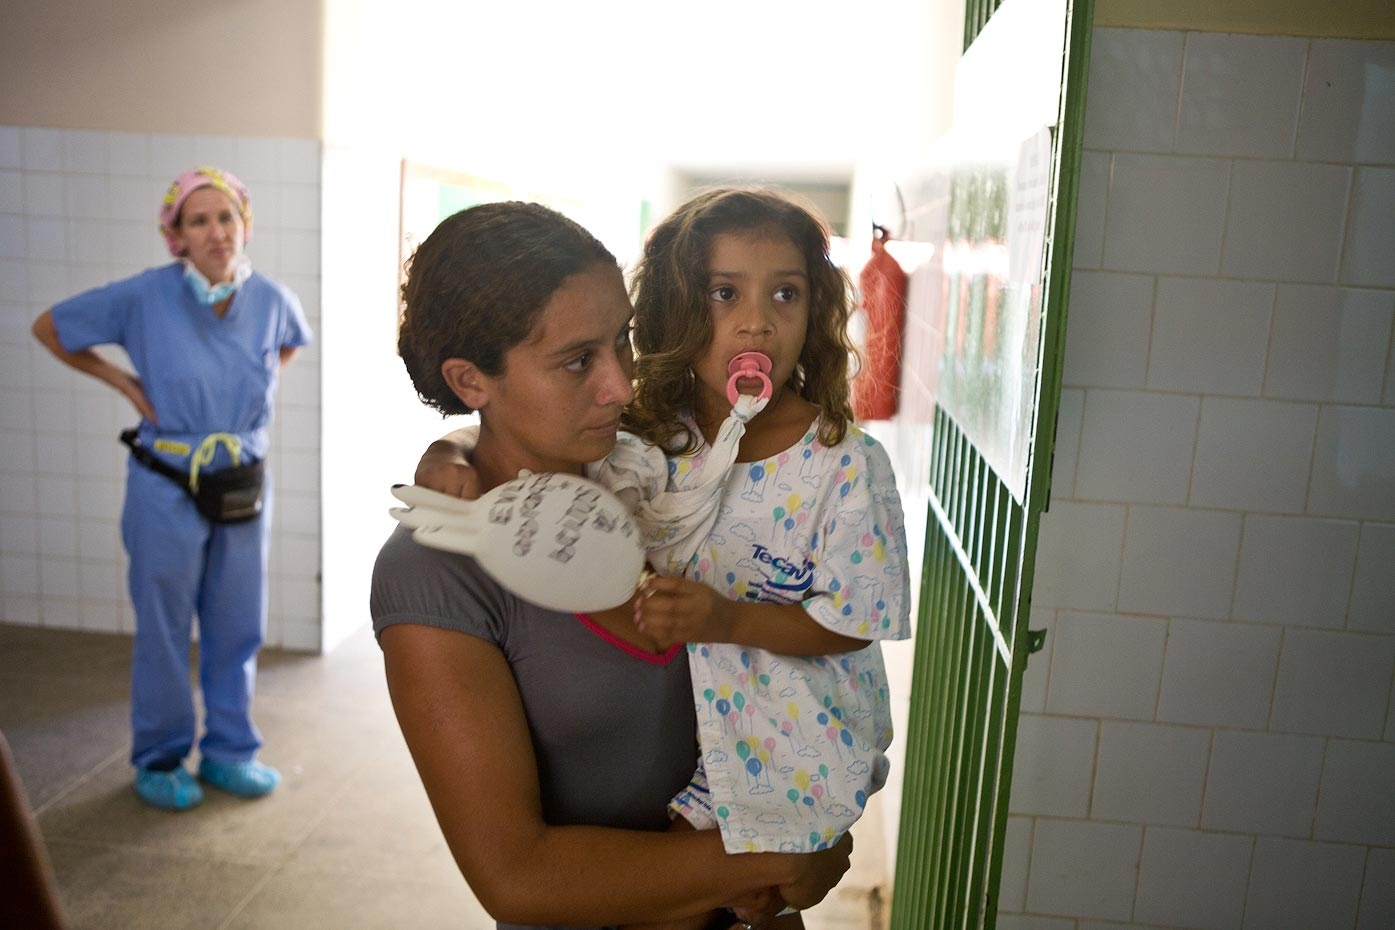 Evelyn and Luzirene walk into the operating room followed by Robin Birchenough, CRNA Aquiraz, Brazil, 2008 For Healing the Children Northeast